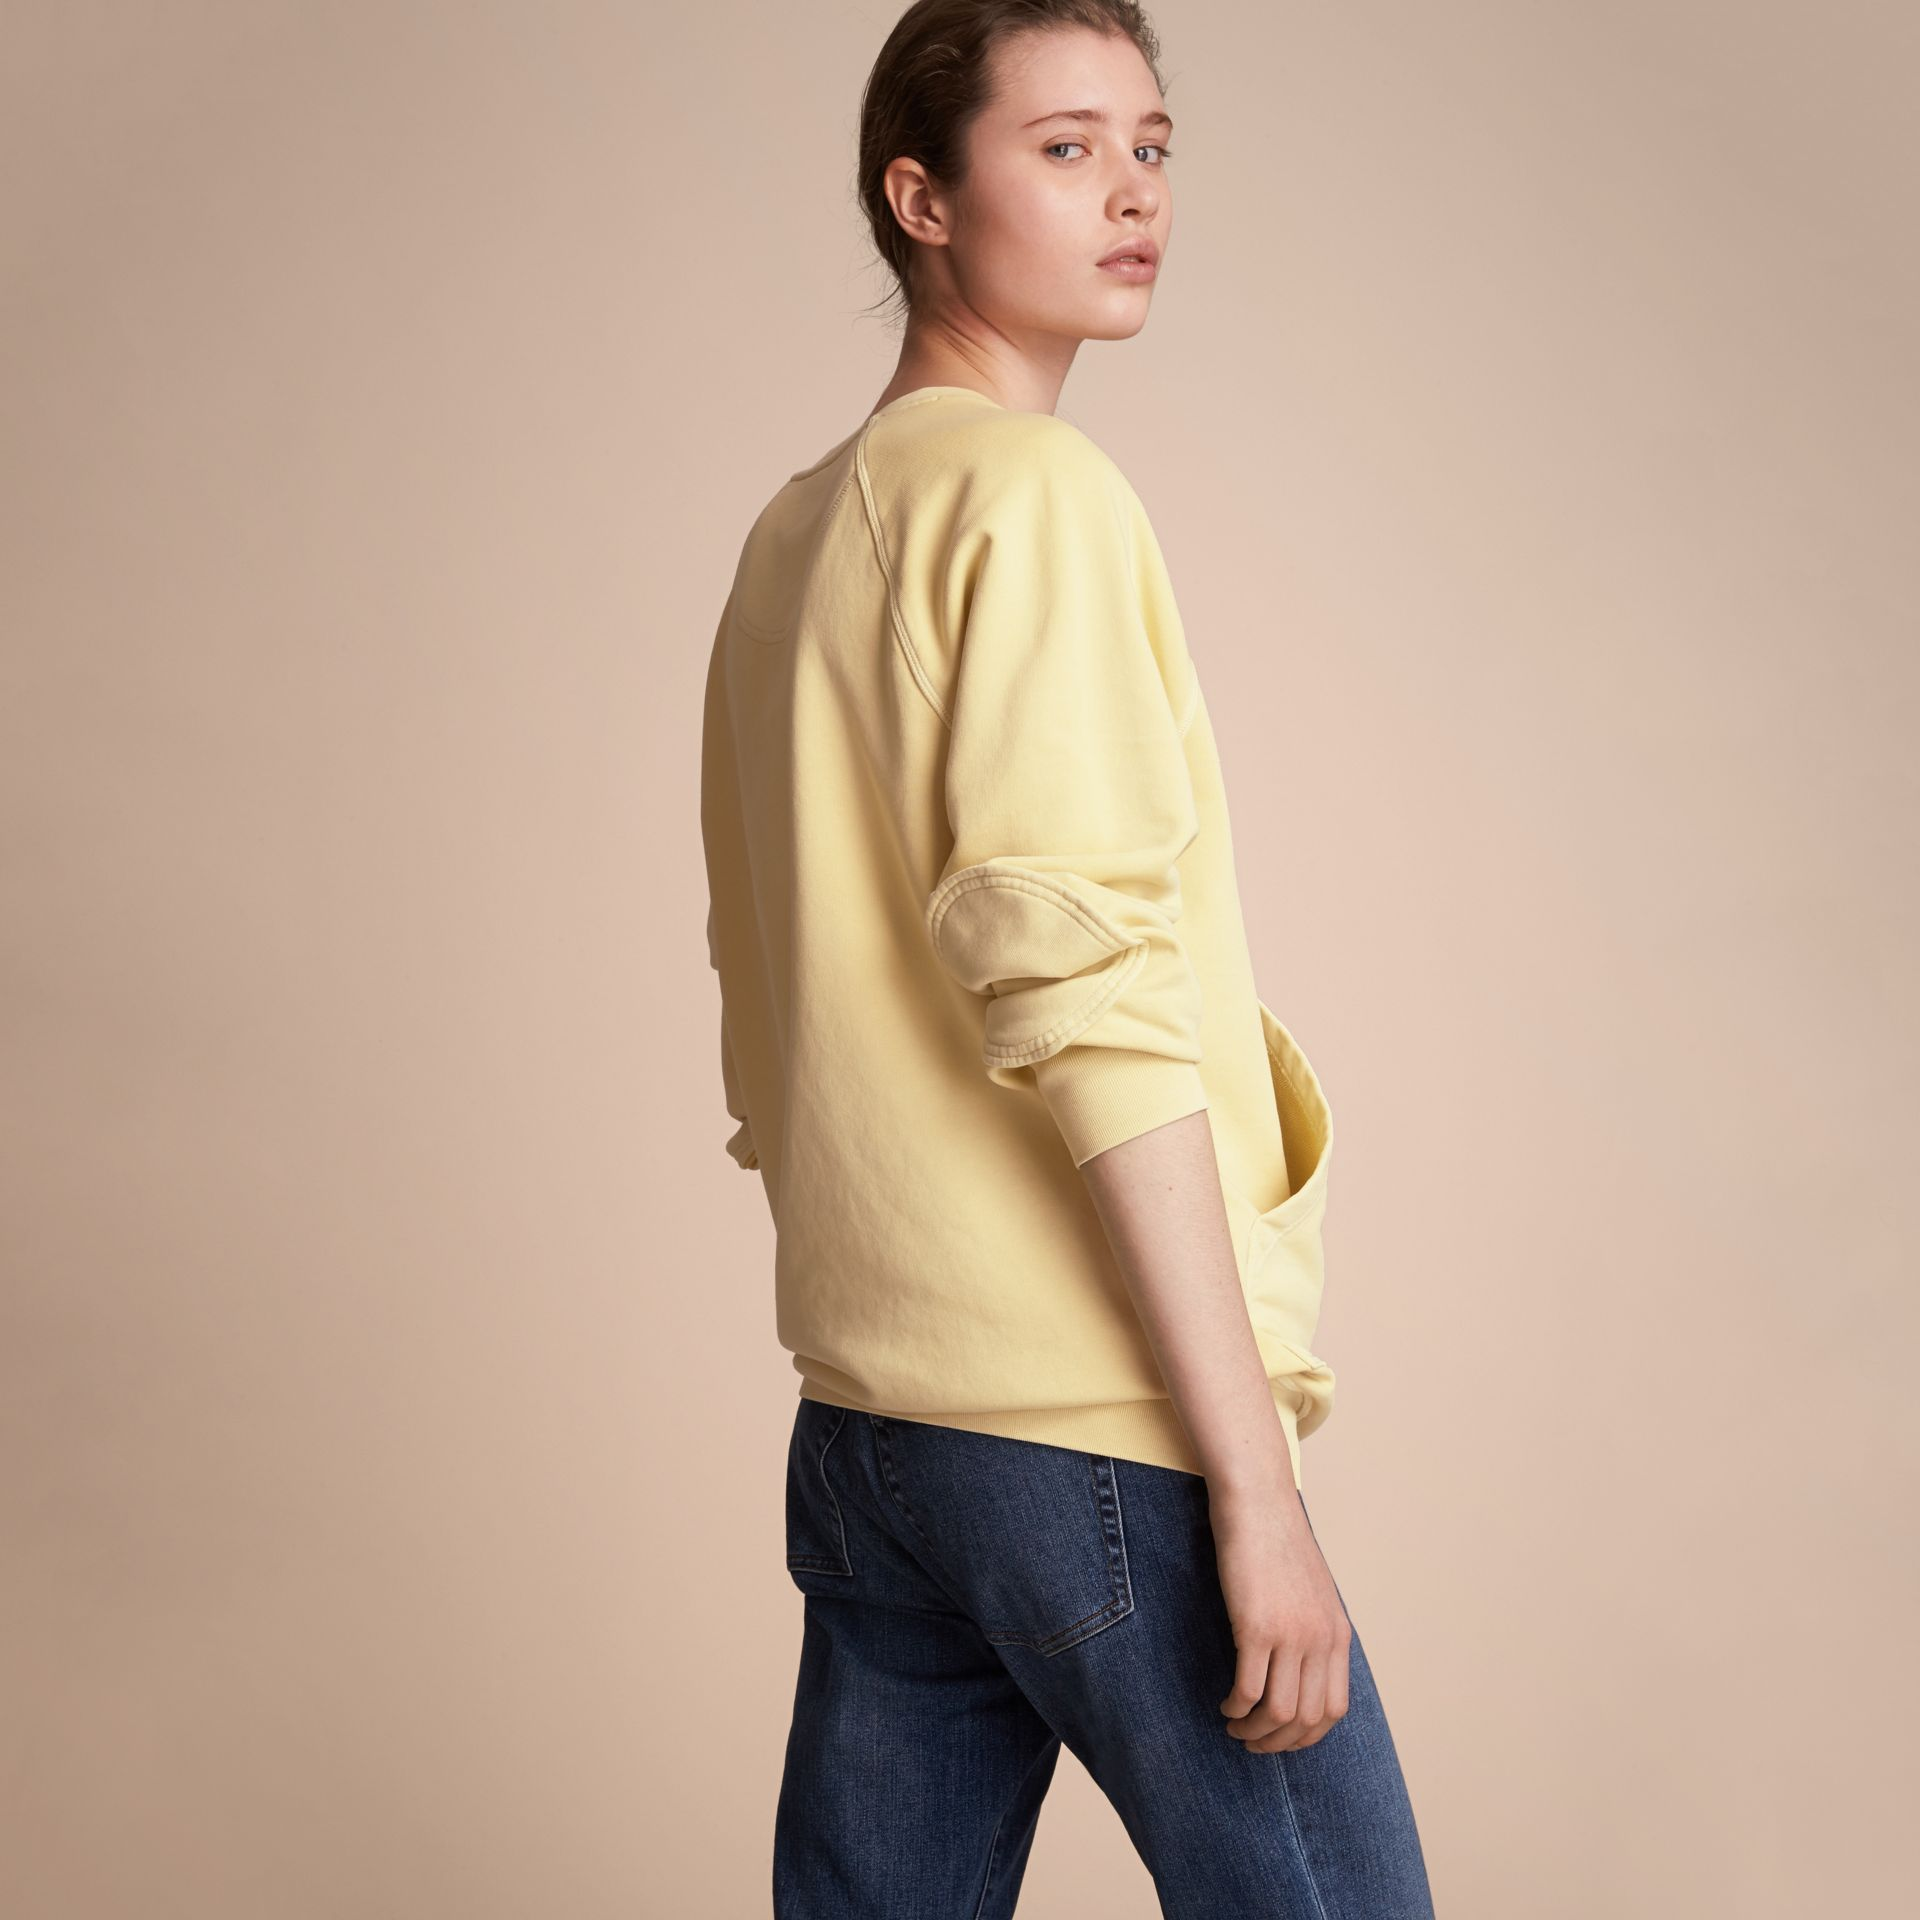 Unisex Pigment-dyed Cotton Oversize Sweatshirt in Pale Yellow - Women | Burberry - gallery image 6